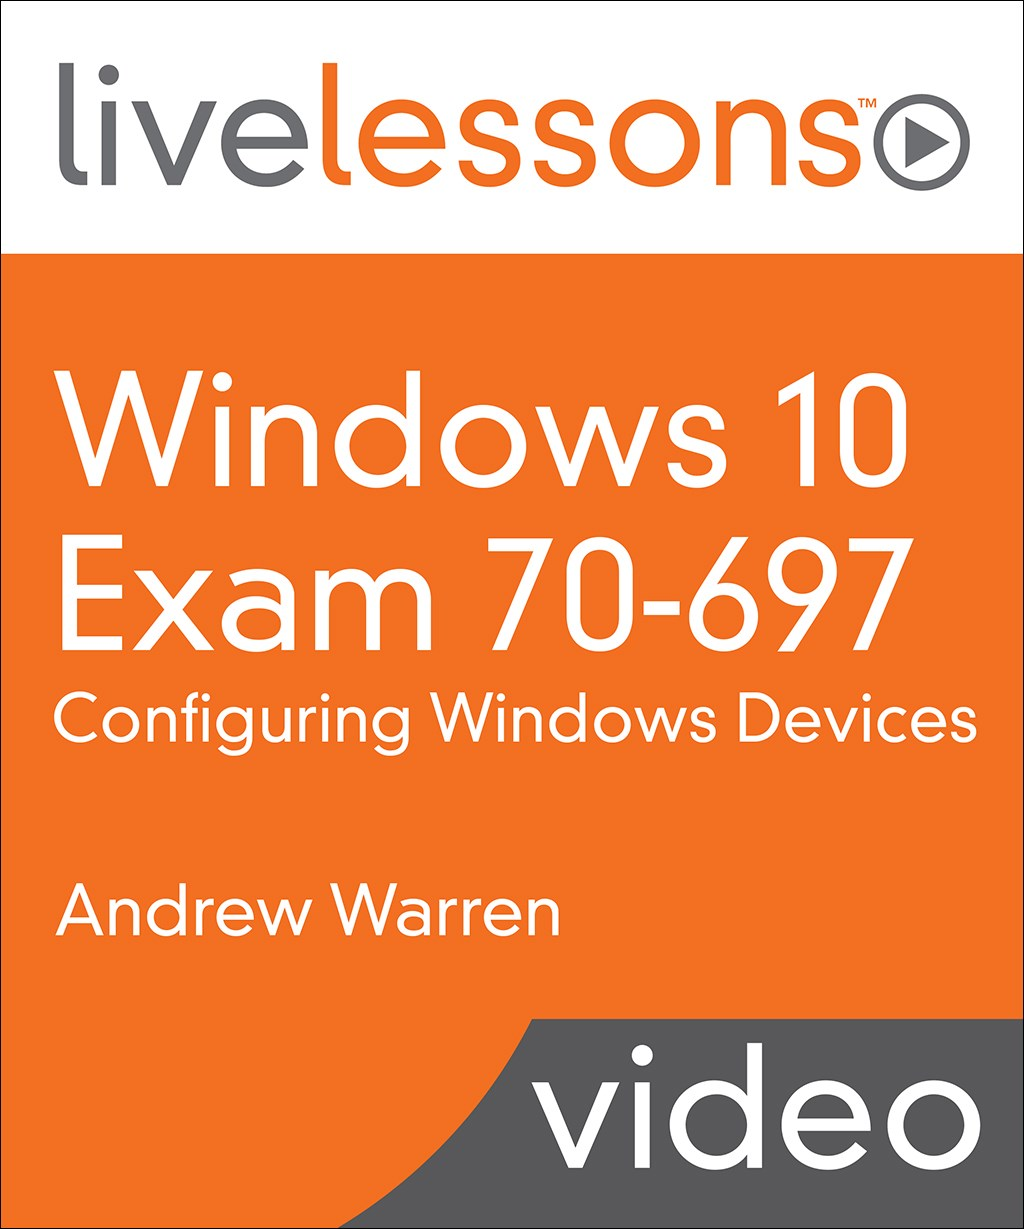 Windows 10 Exam 70-697: Configuring Windows Devices LiveLessons